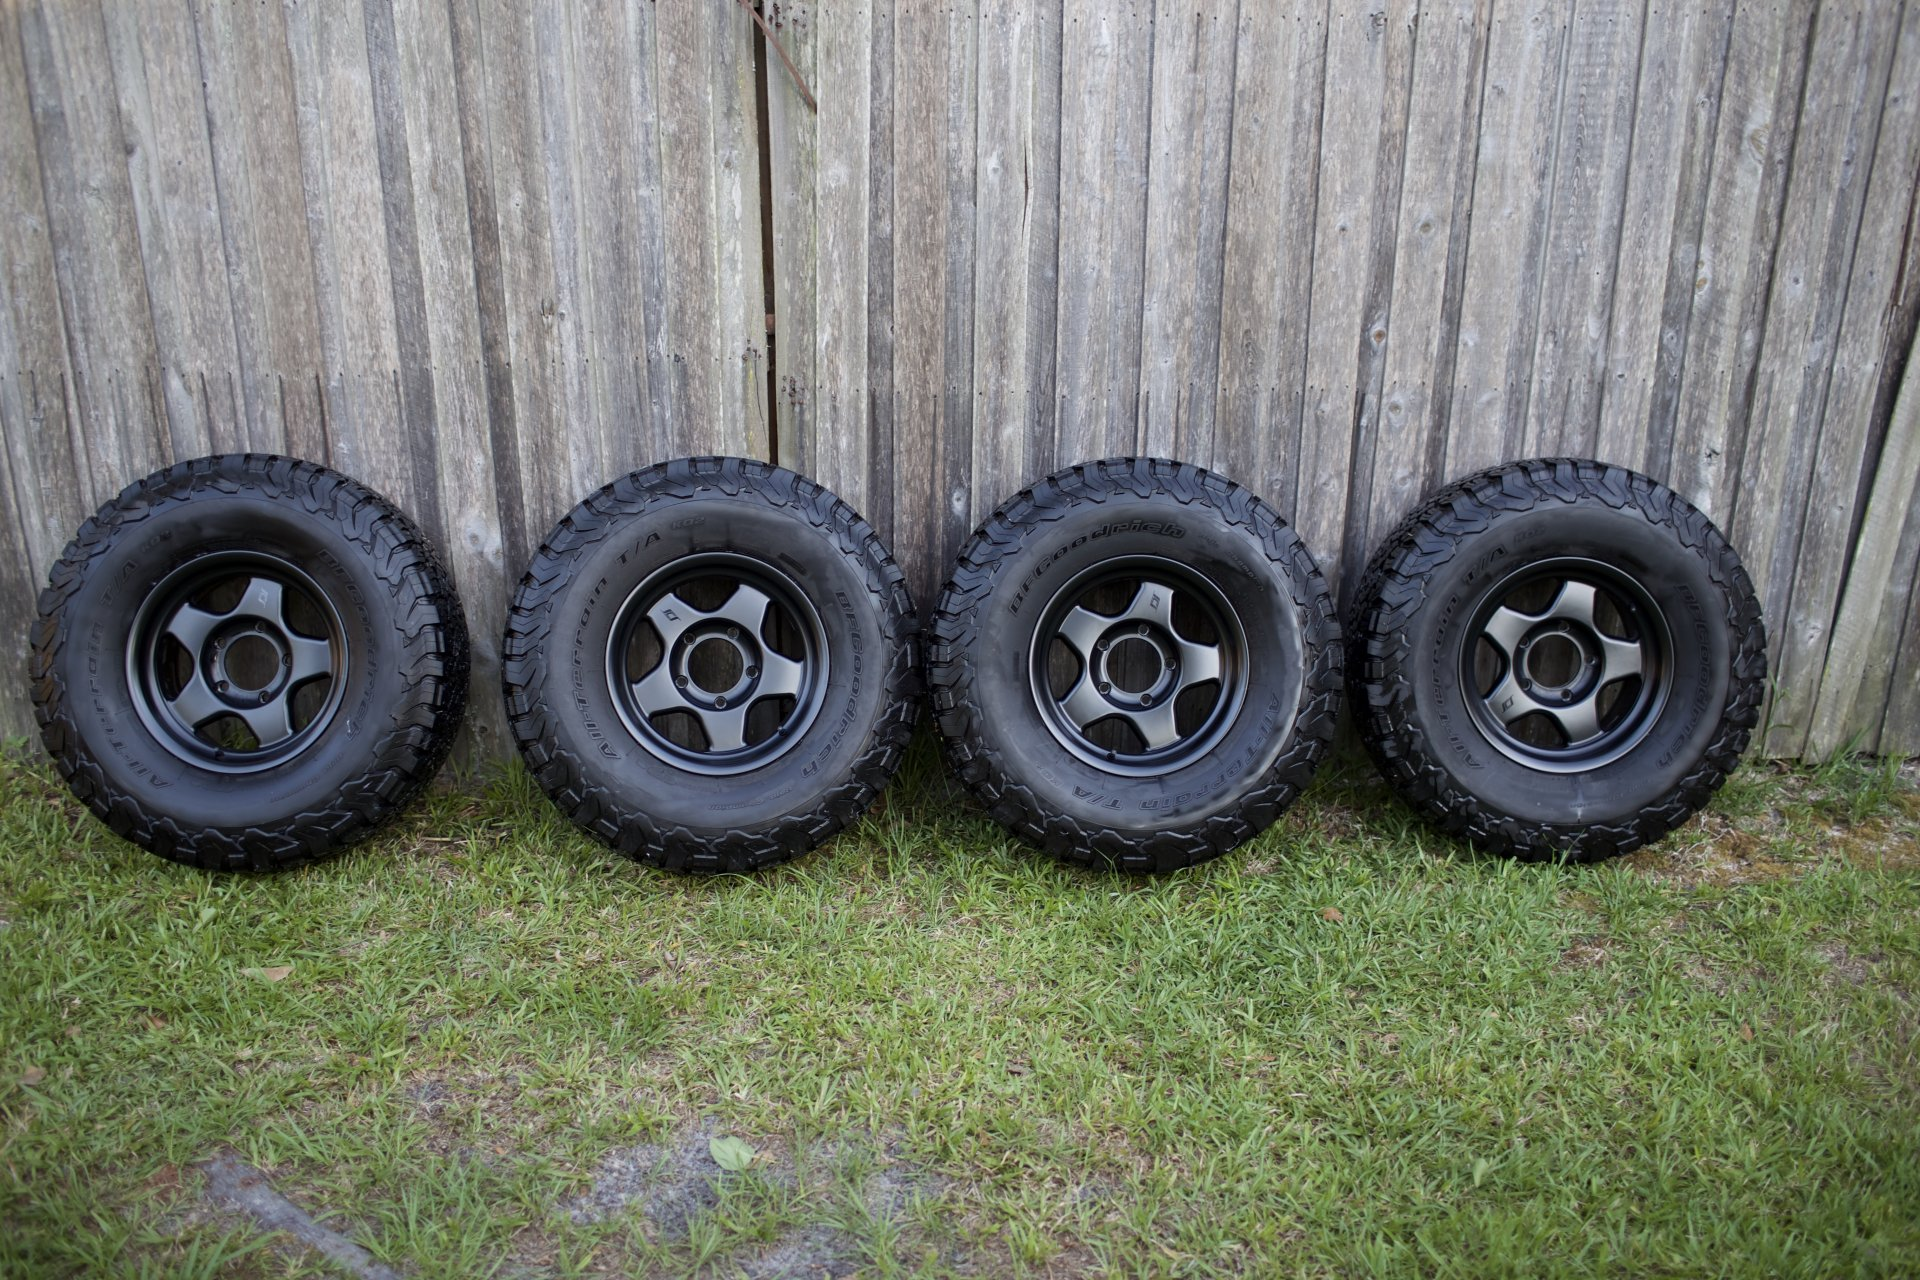 For Sale - (4) SCS Matte Black F5 Wheels with 295/75/16 KO2 and Lugs